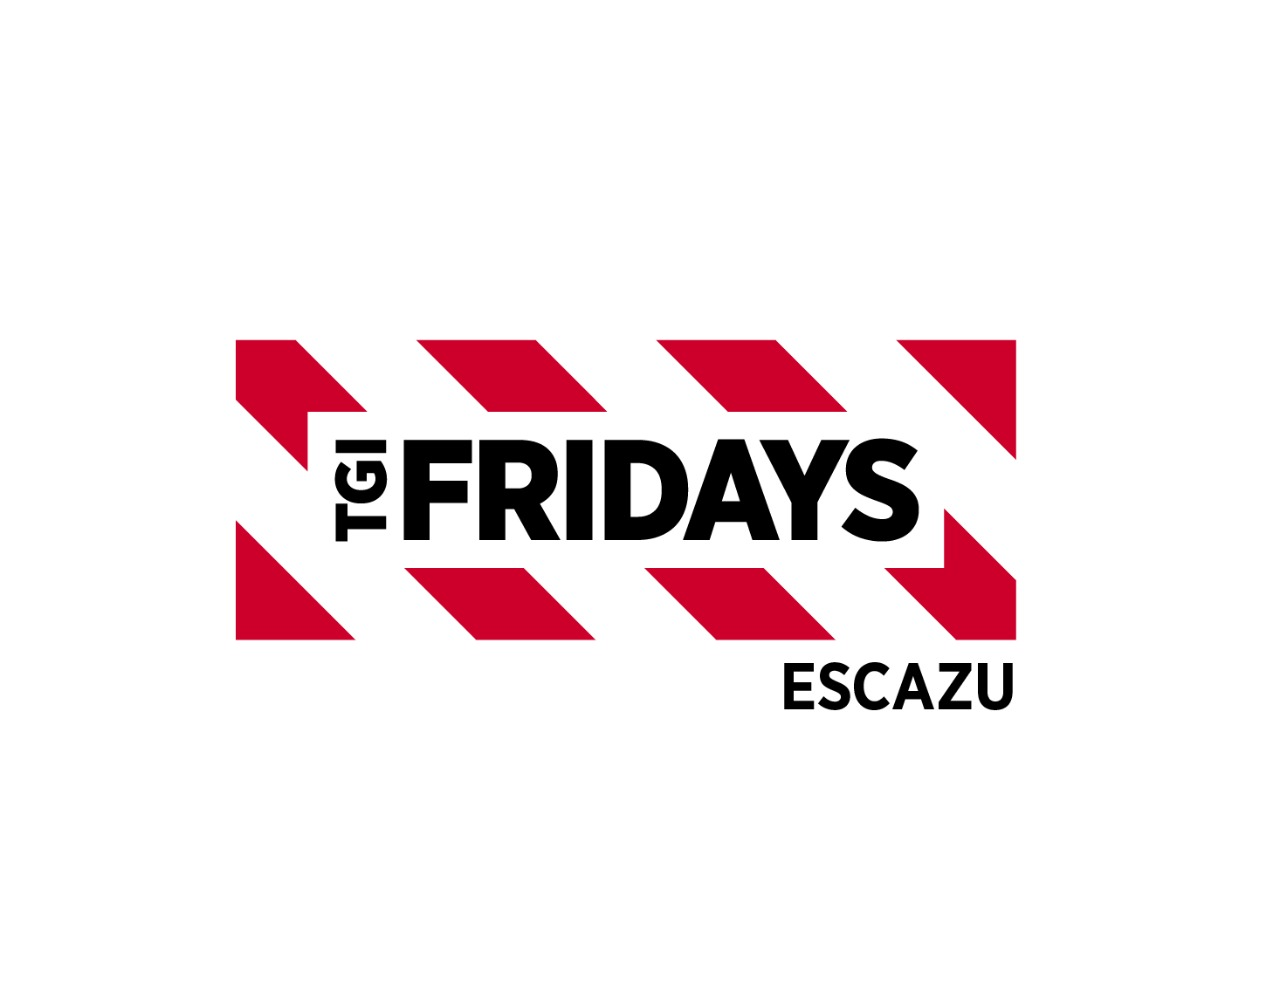 TGI Friday's (Escazu) logo